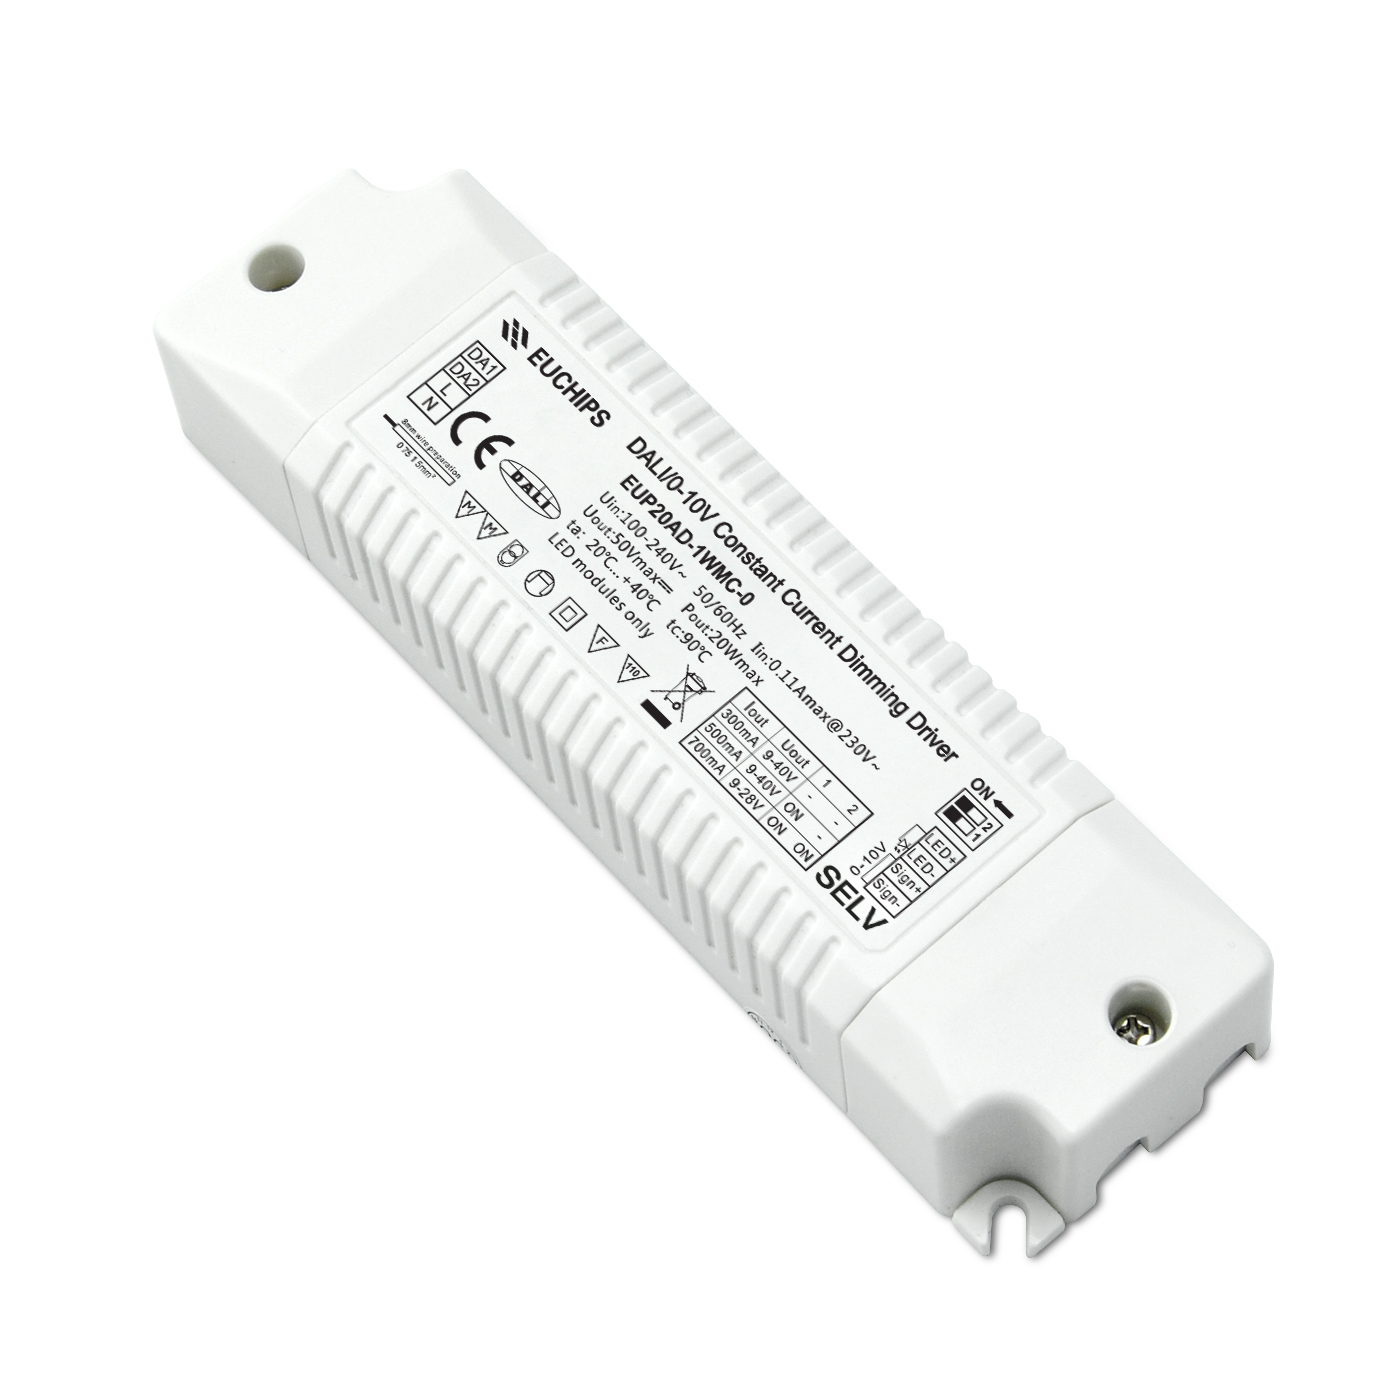 Personlized Products 8 Ways Dmx Splitter -